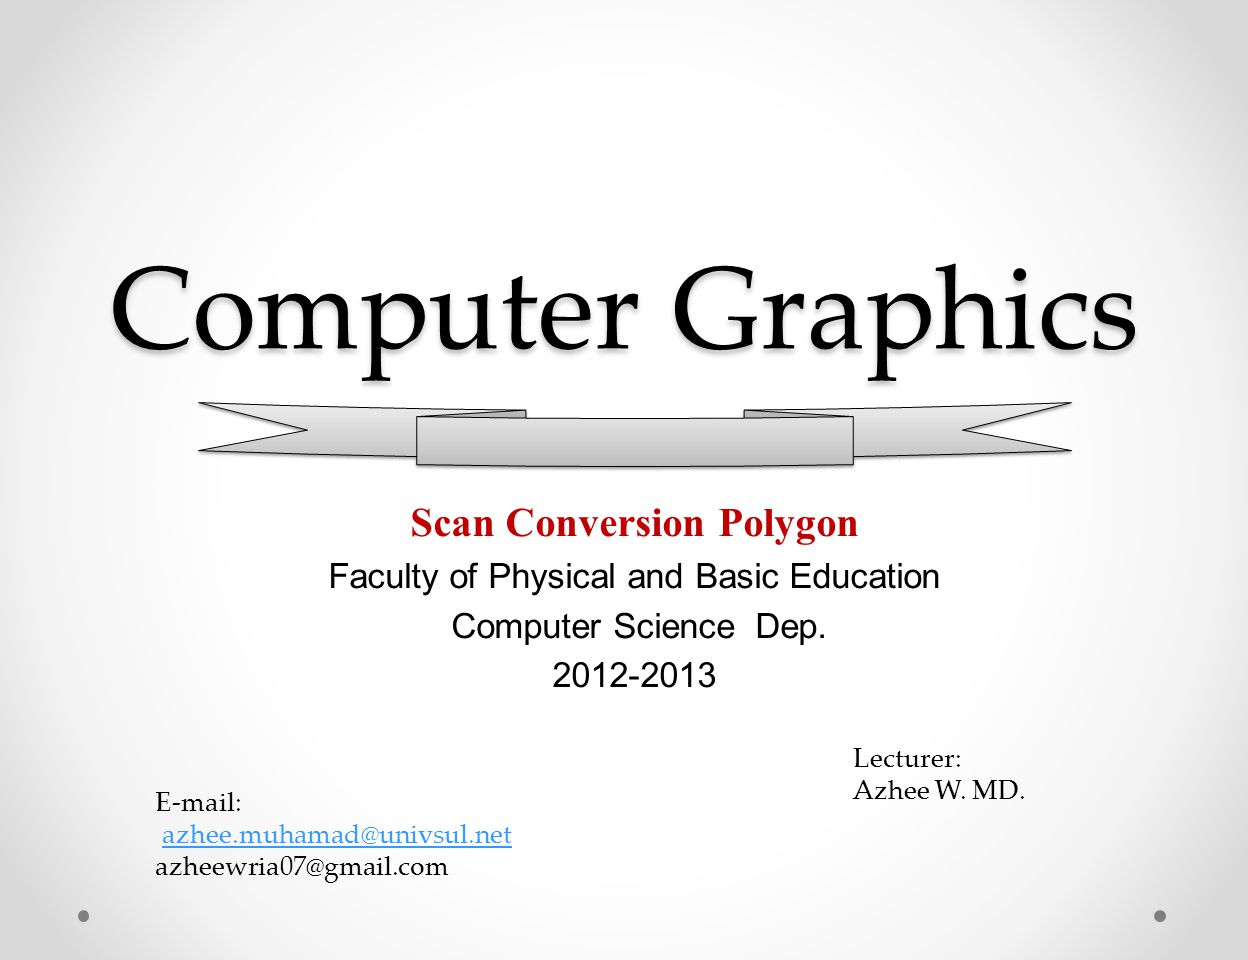 Scan Conversion polygon University of sulaimanyiah - Faculty of Physical and Basic Education - Computer Dep.